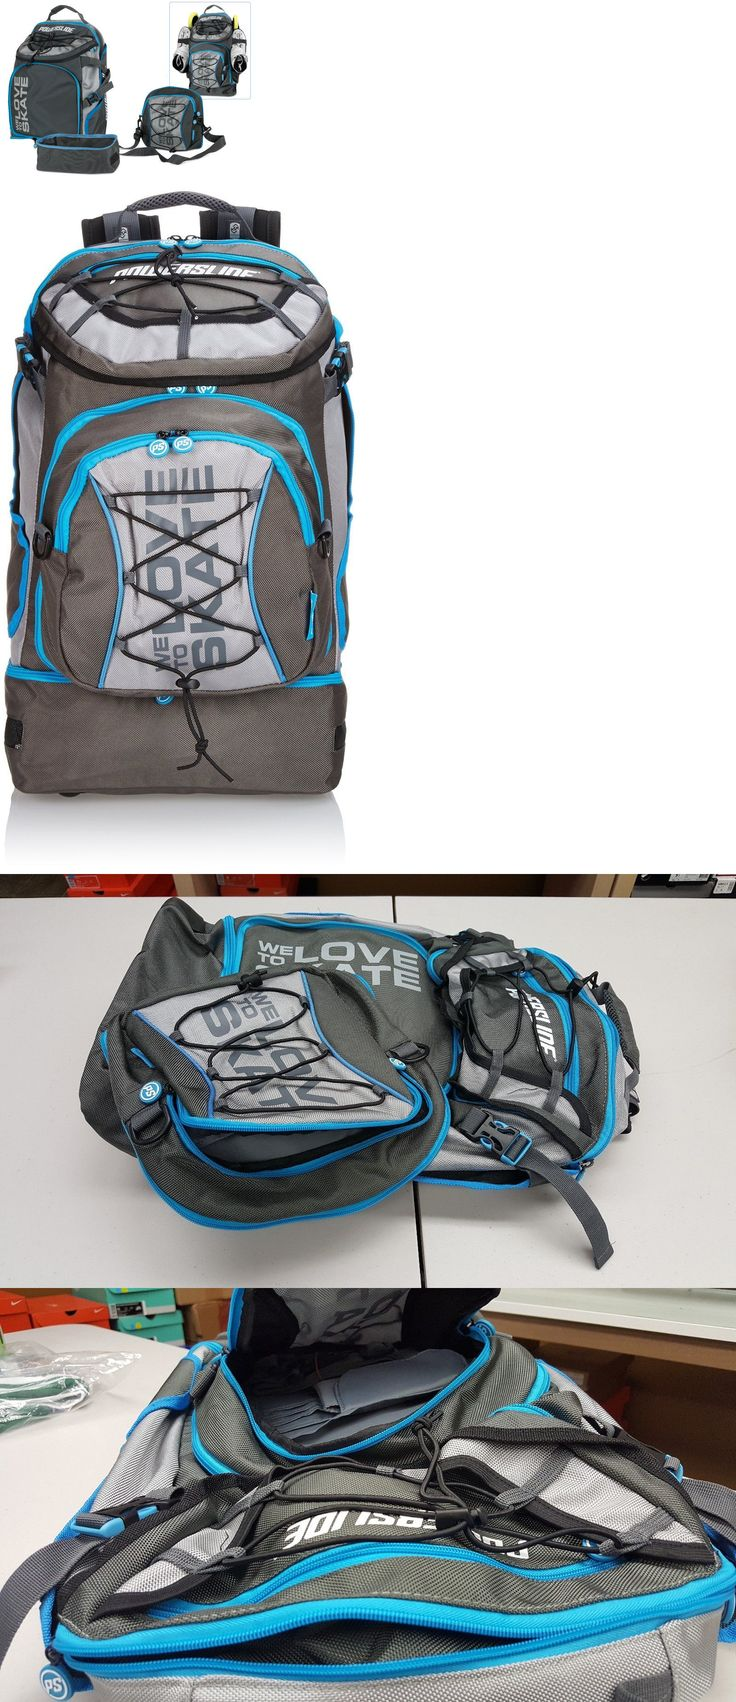 Other Inline and Roller Skating 1301: Powerslide Pro Backpack From Inline Warehouse Brand New 907004 -> BUY IT NOW ONLY: $89.95 on eBay!